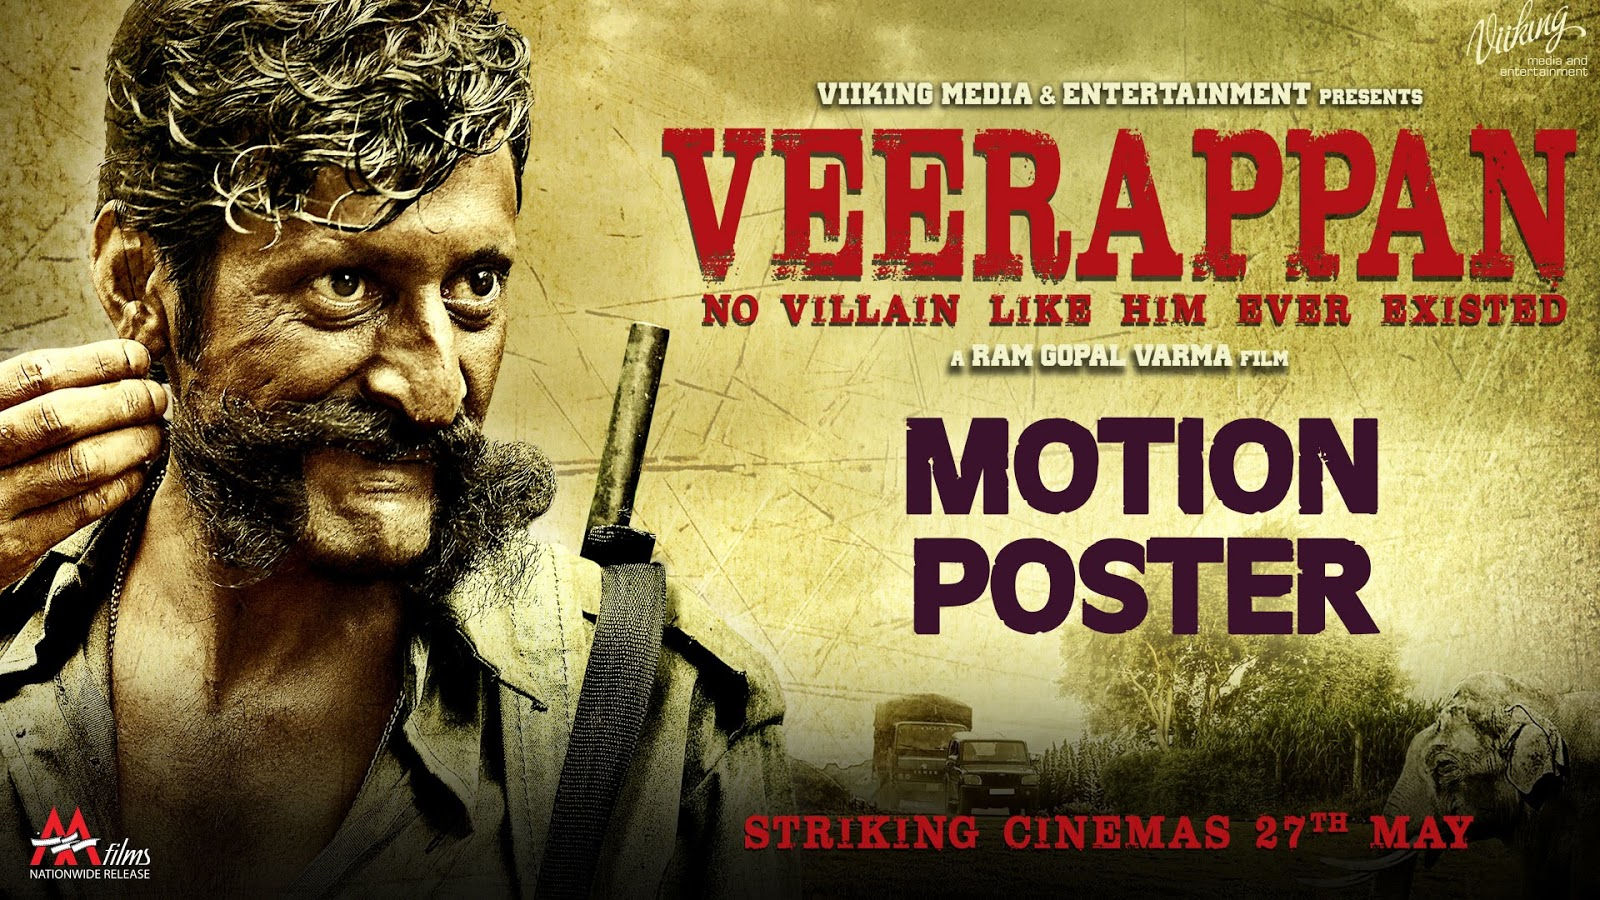 Complete cast and crew of Veerappan  (2016) bollywood hindi movie wiki, poster, Trailer, music list - Sandeep Bharadwaj and Sachiin J Joshi, Movie release date 27 May, 2016